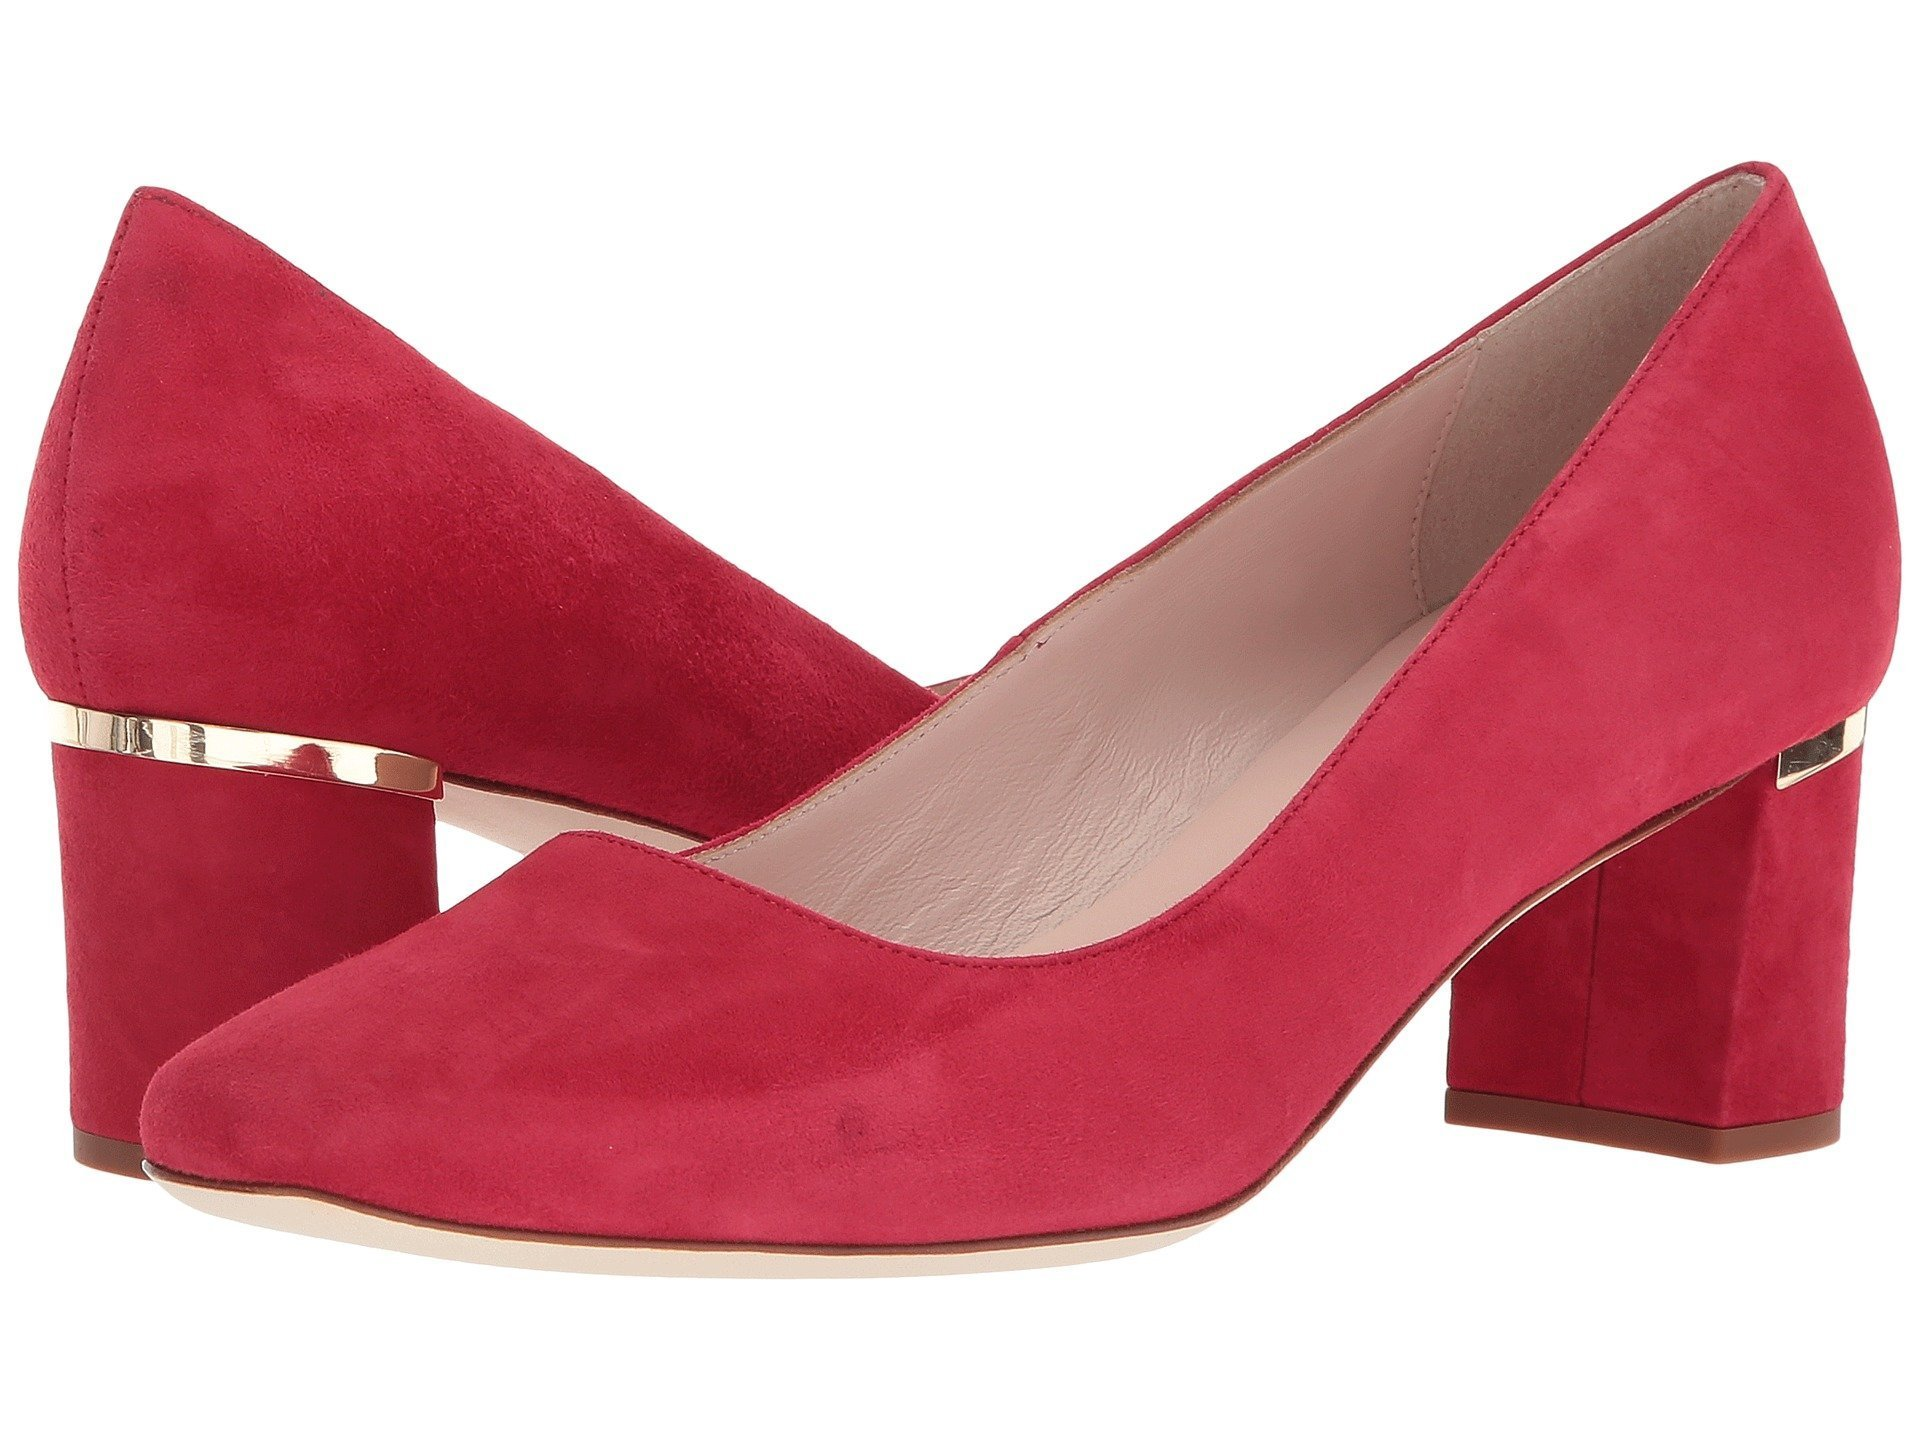 Kate Spade New York ★パンプス★Charm Red Suede★送料無料